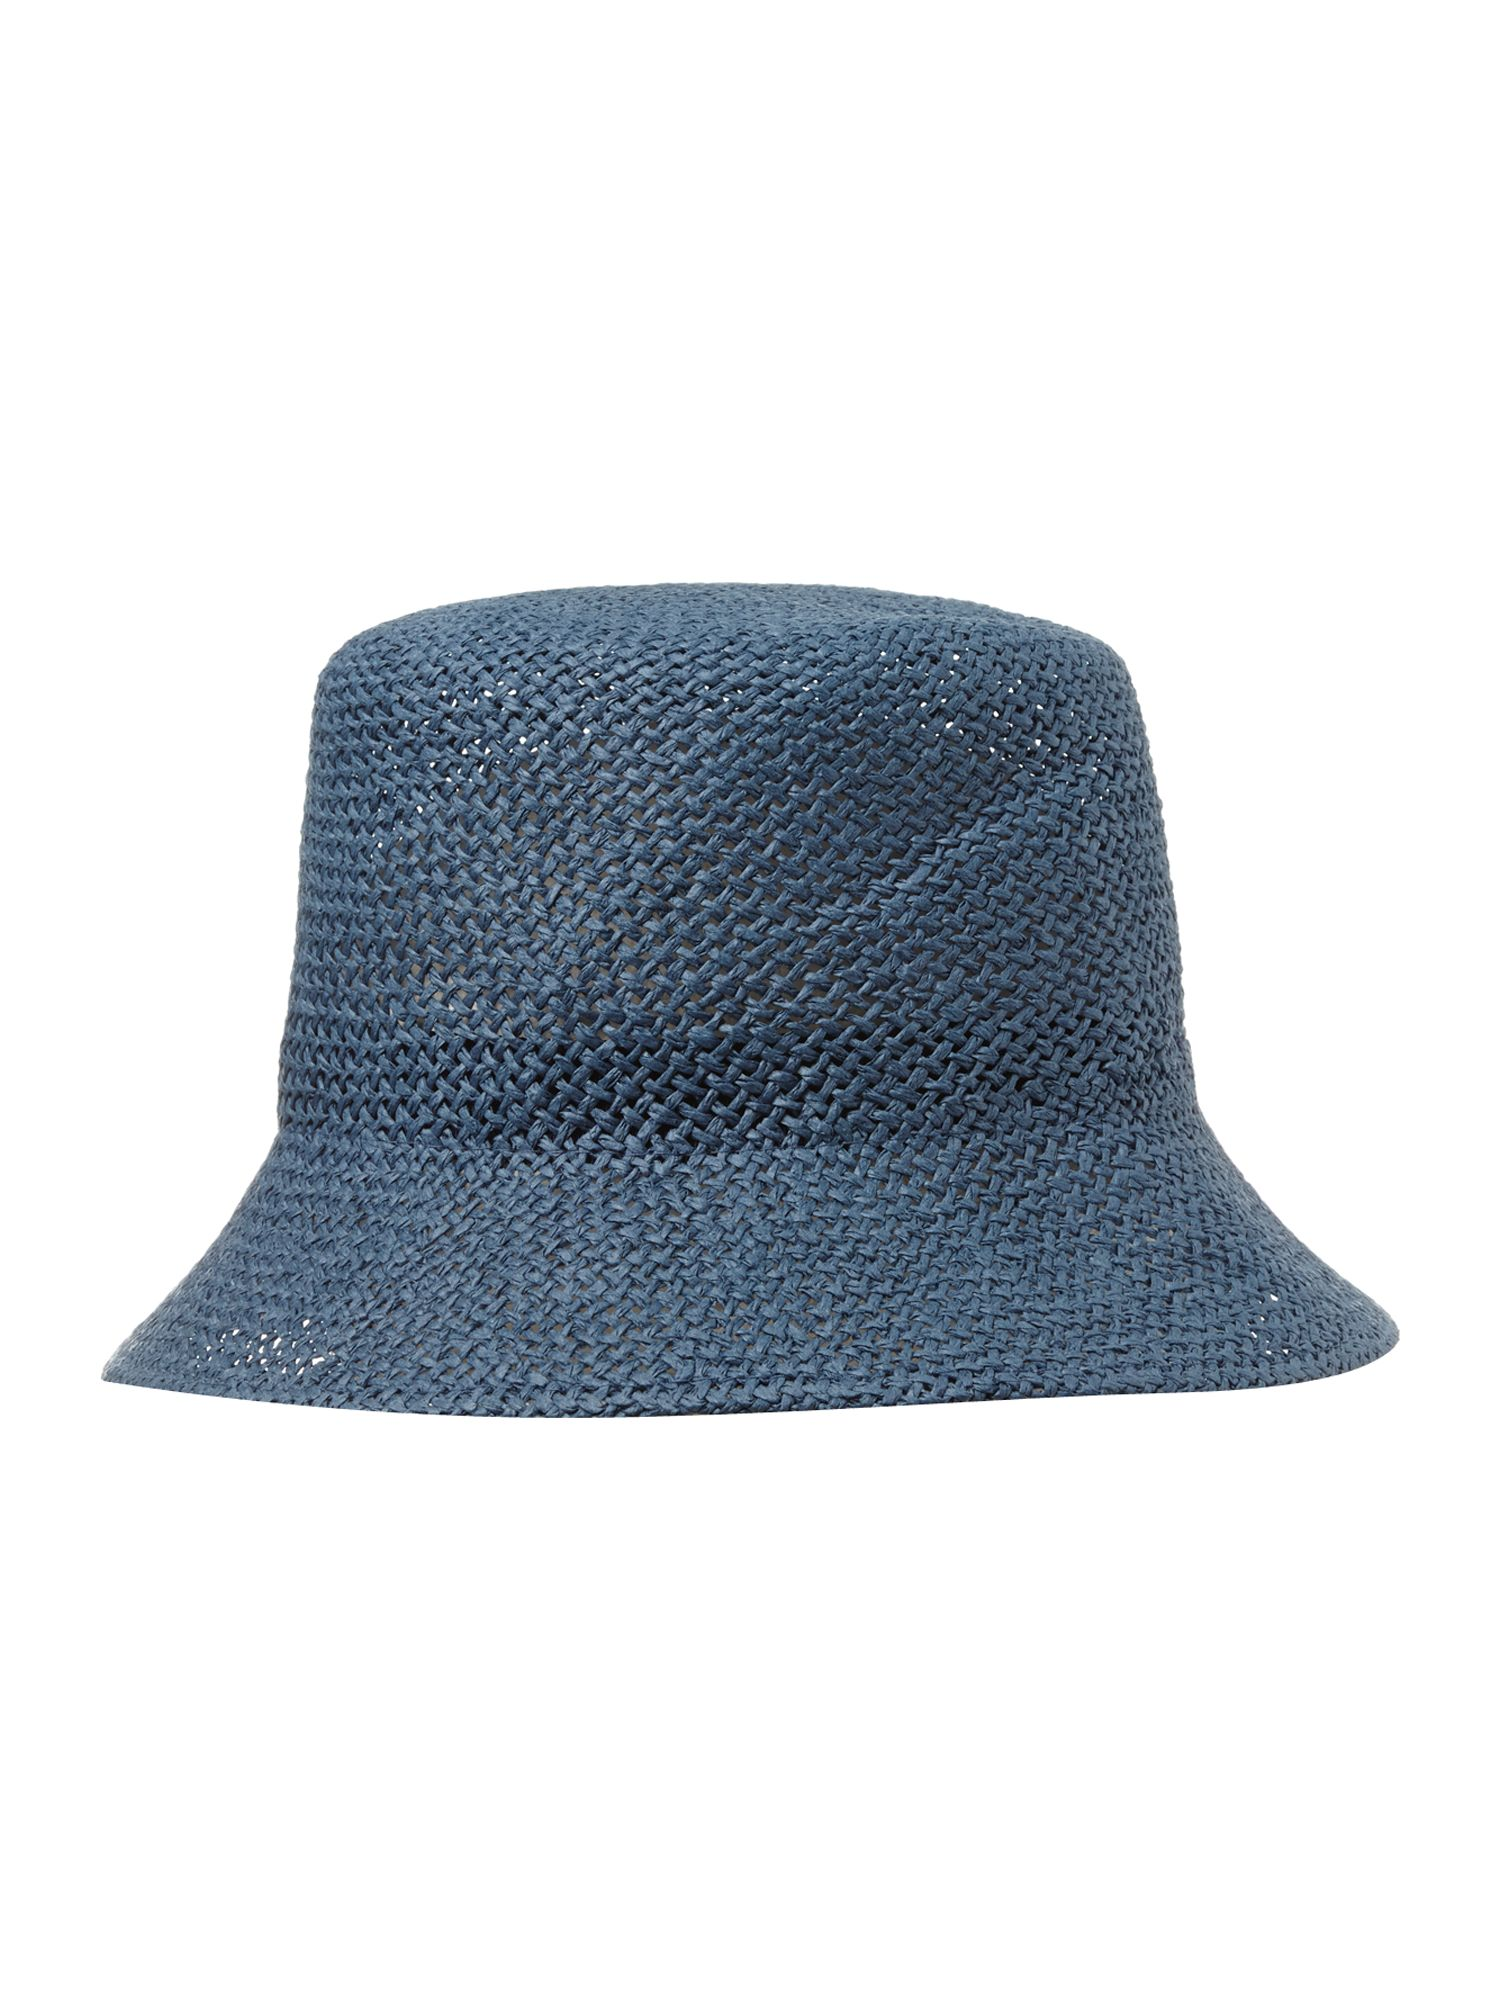 Open weave turn down brim summer hat